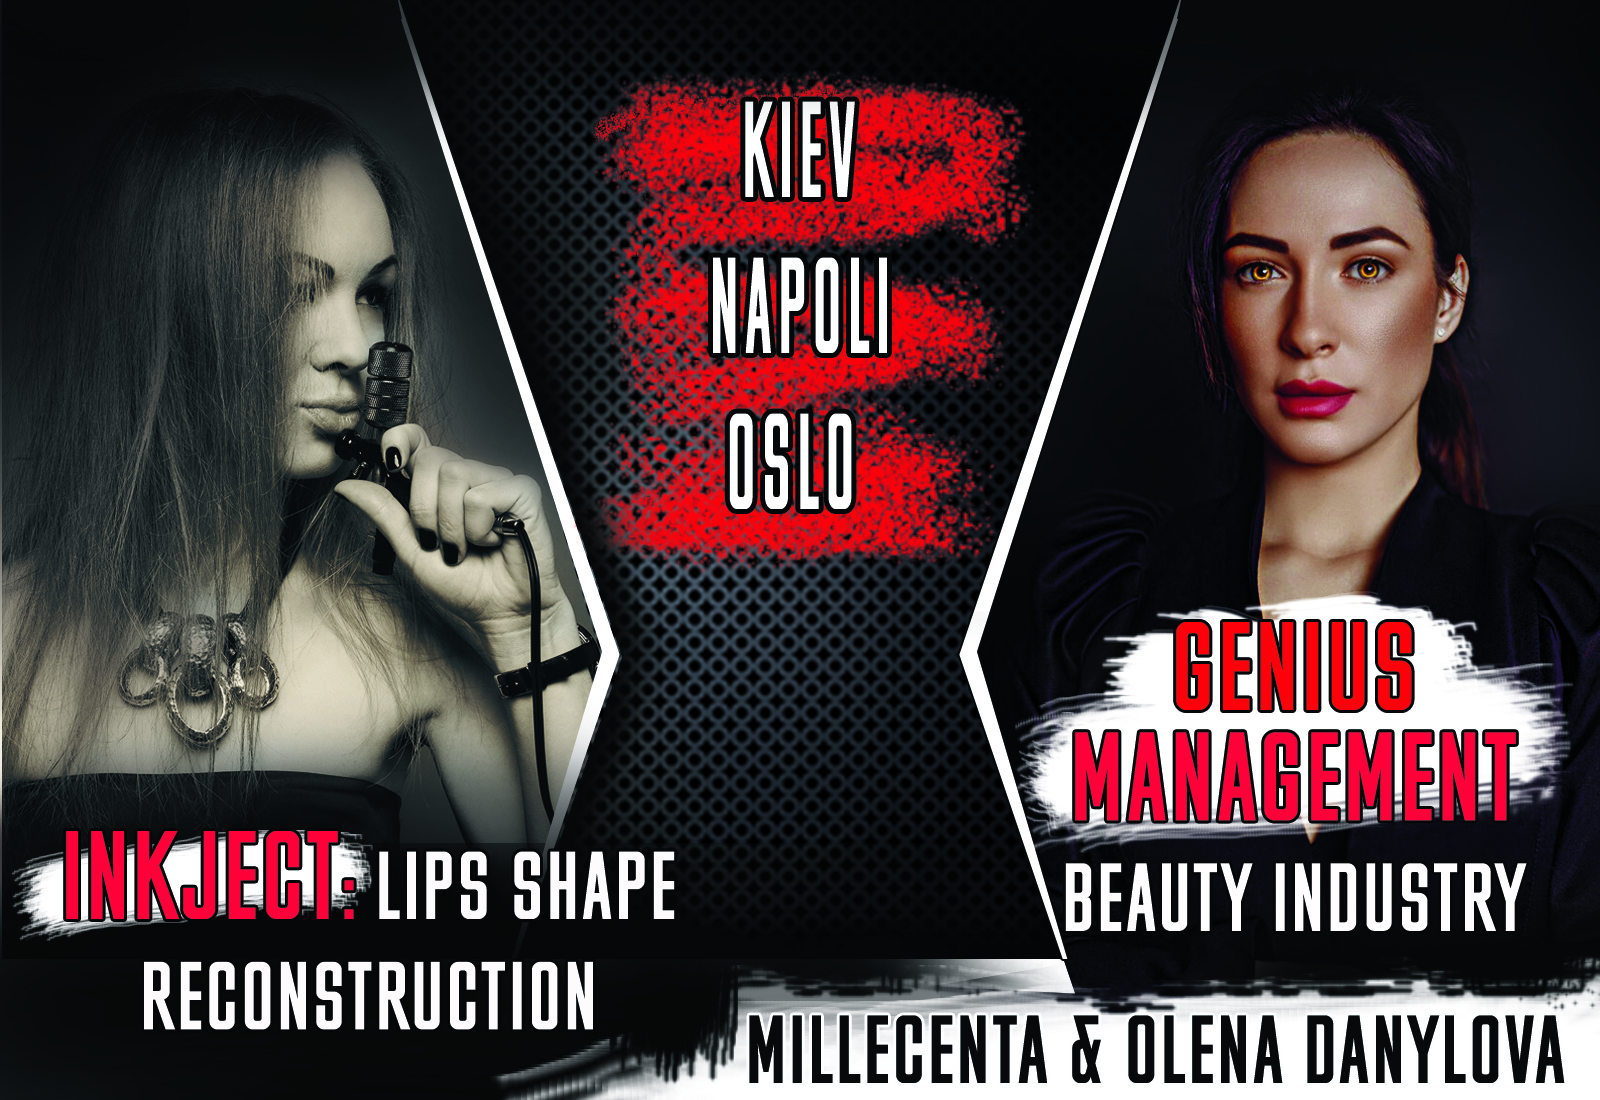 NKJECT: LIPS SHAPE RECONSTRUCTION GENIUS MANAGEMENT